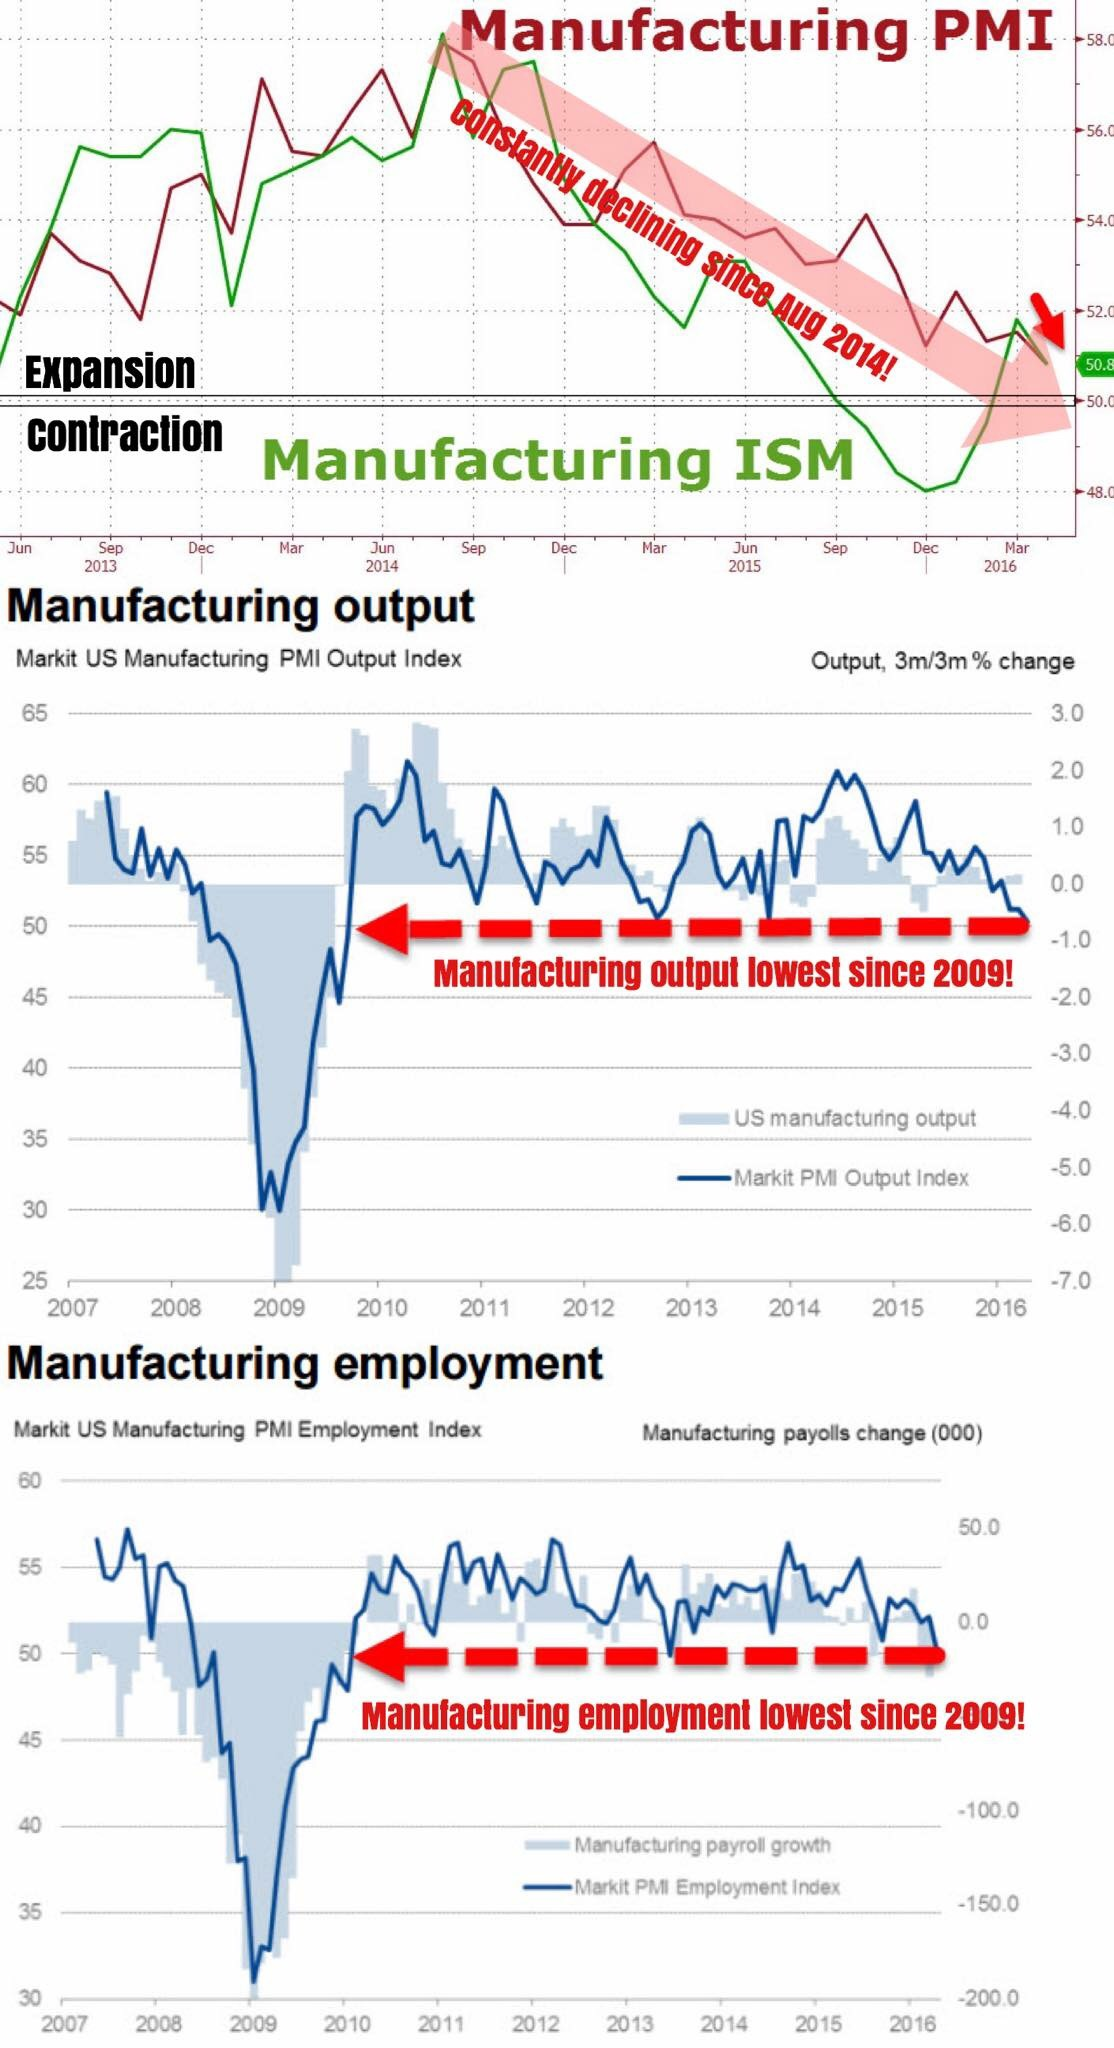 """""""It keeps getting worse... And worse... And worse... Until both U.S. manufacturing PMI and ISM composites head into contraction; we're just a hairline away from the 50 mark. Both widely watched macro indicators have been declining consistently since August 2014, with ISM dipping below 50 to lows of 48 in December last year!    Both the PMI manufacturing output and employment are currently at 2009 levels, when the American economy was still reeling from the aftershocks of the grimmest recession since the Great Depression. Yellen, we have a problem.""""    Business Of Finance on Facebook, 2 May 2016"""